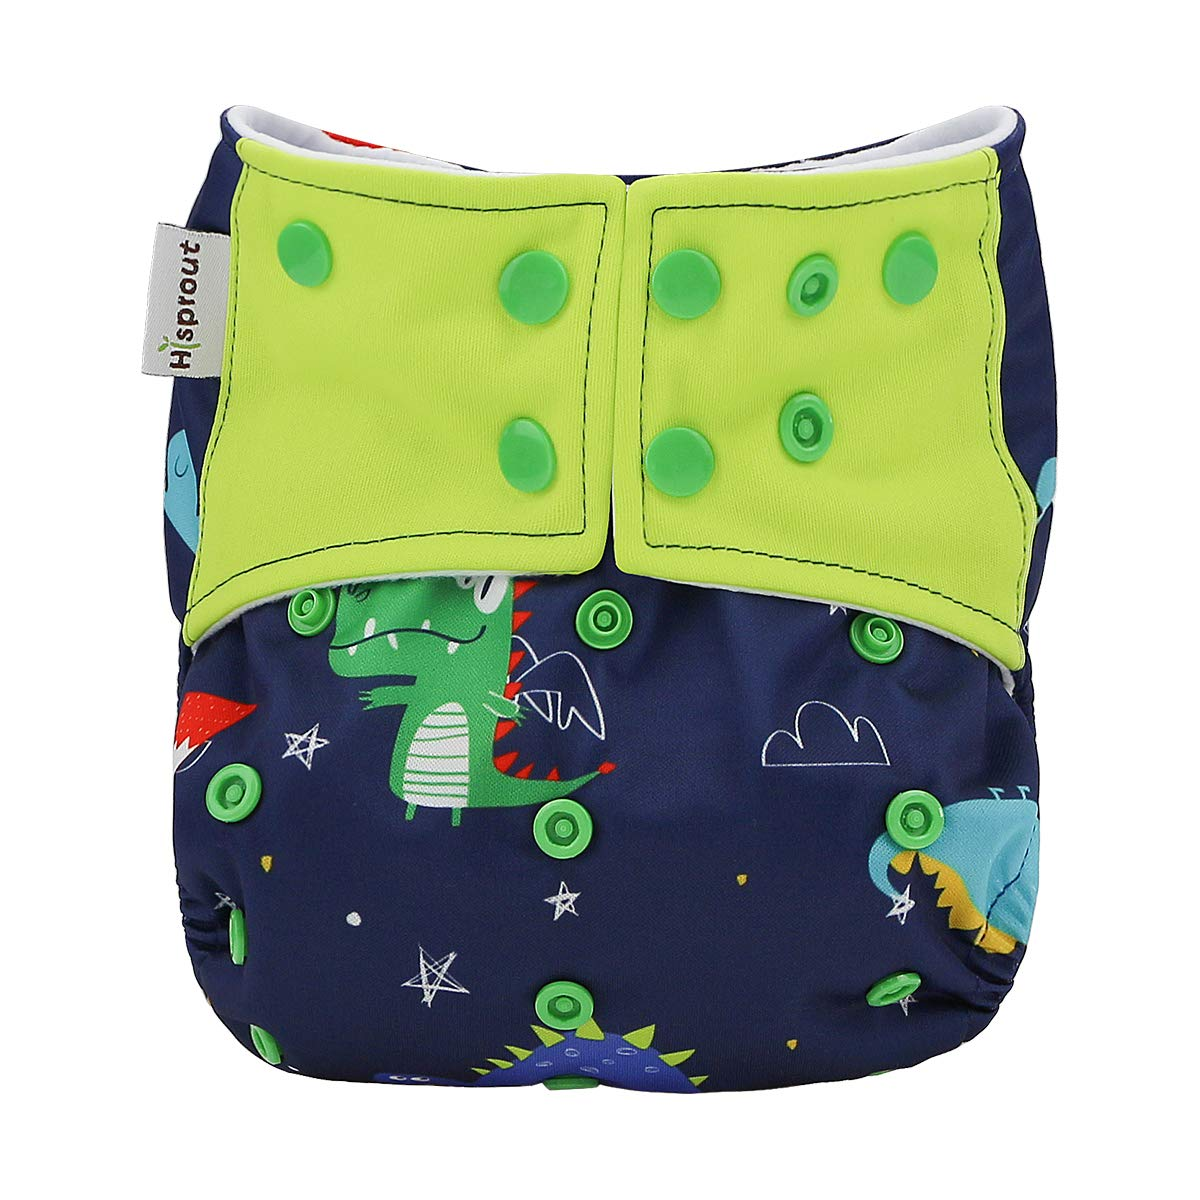 Hi Sprout One Size Adjustable Washable Reusable Pocket Cloth Diapers for Baby Girls and Boys,Dinosaur